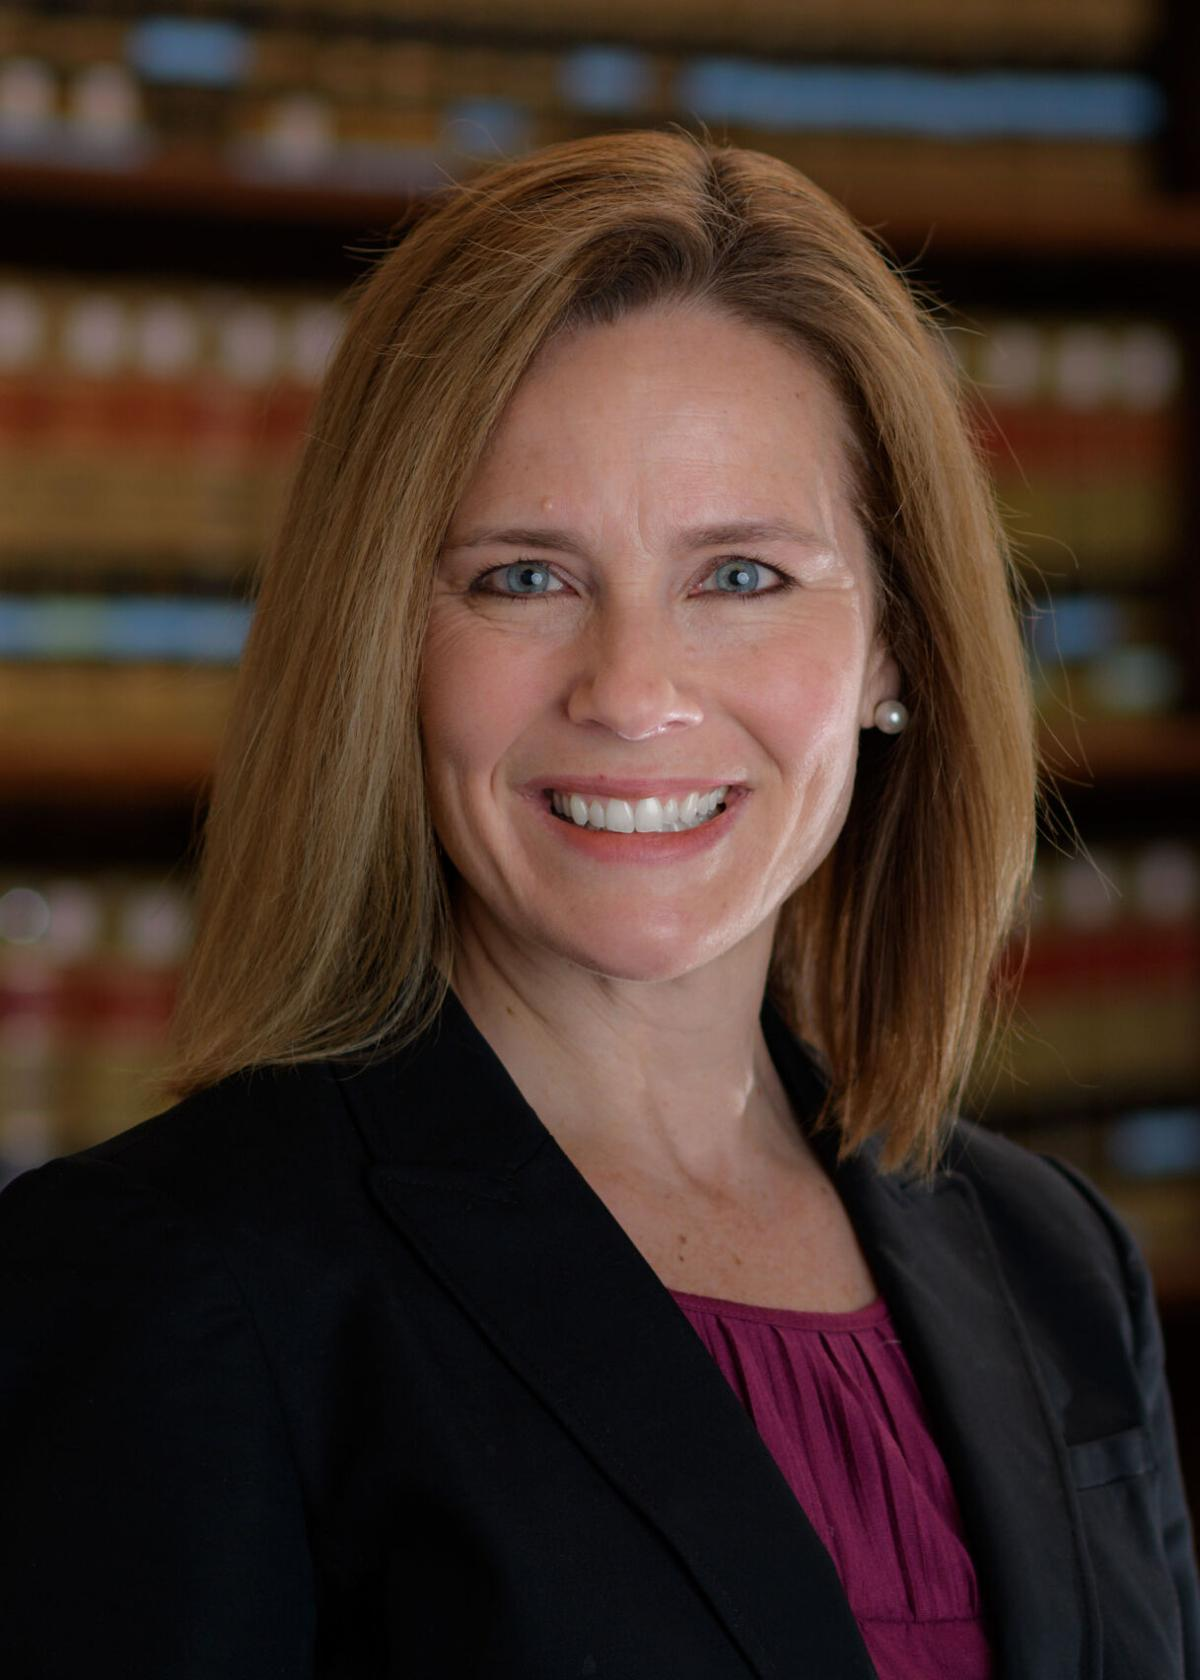 Amy Coney Barrett poses for a photo